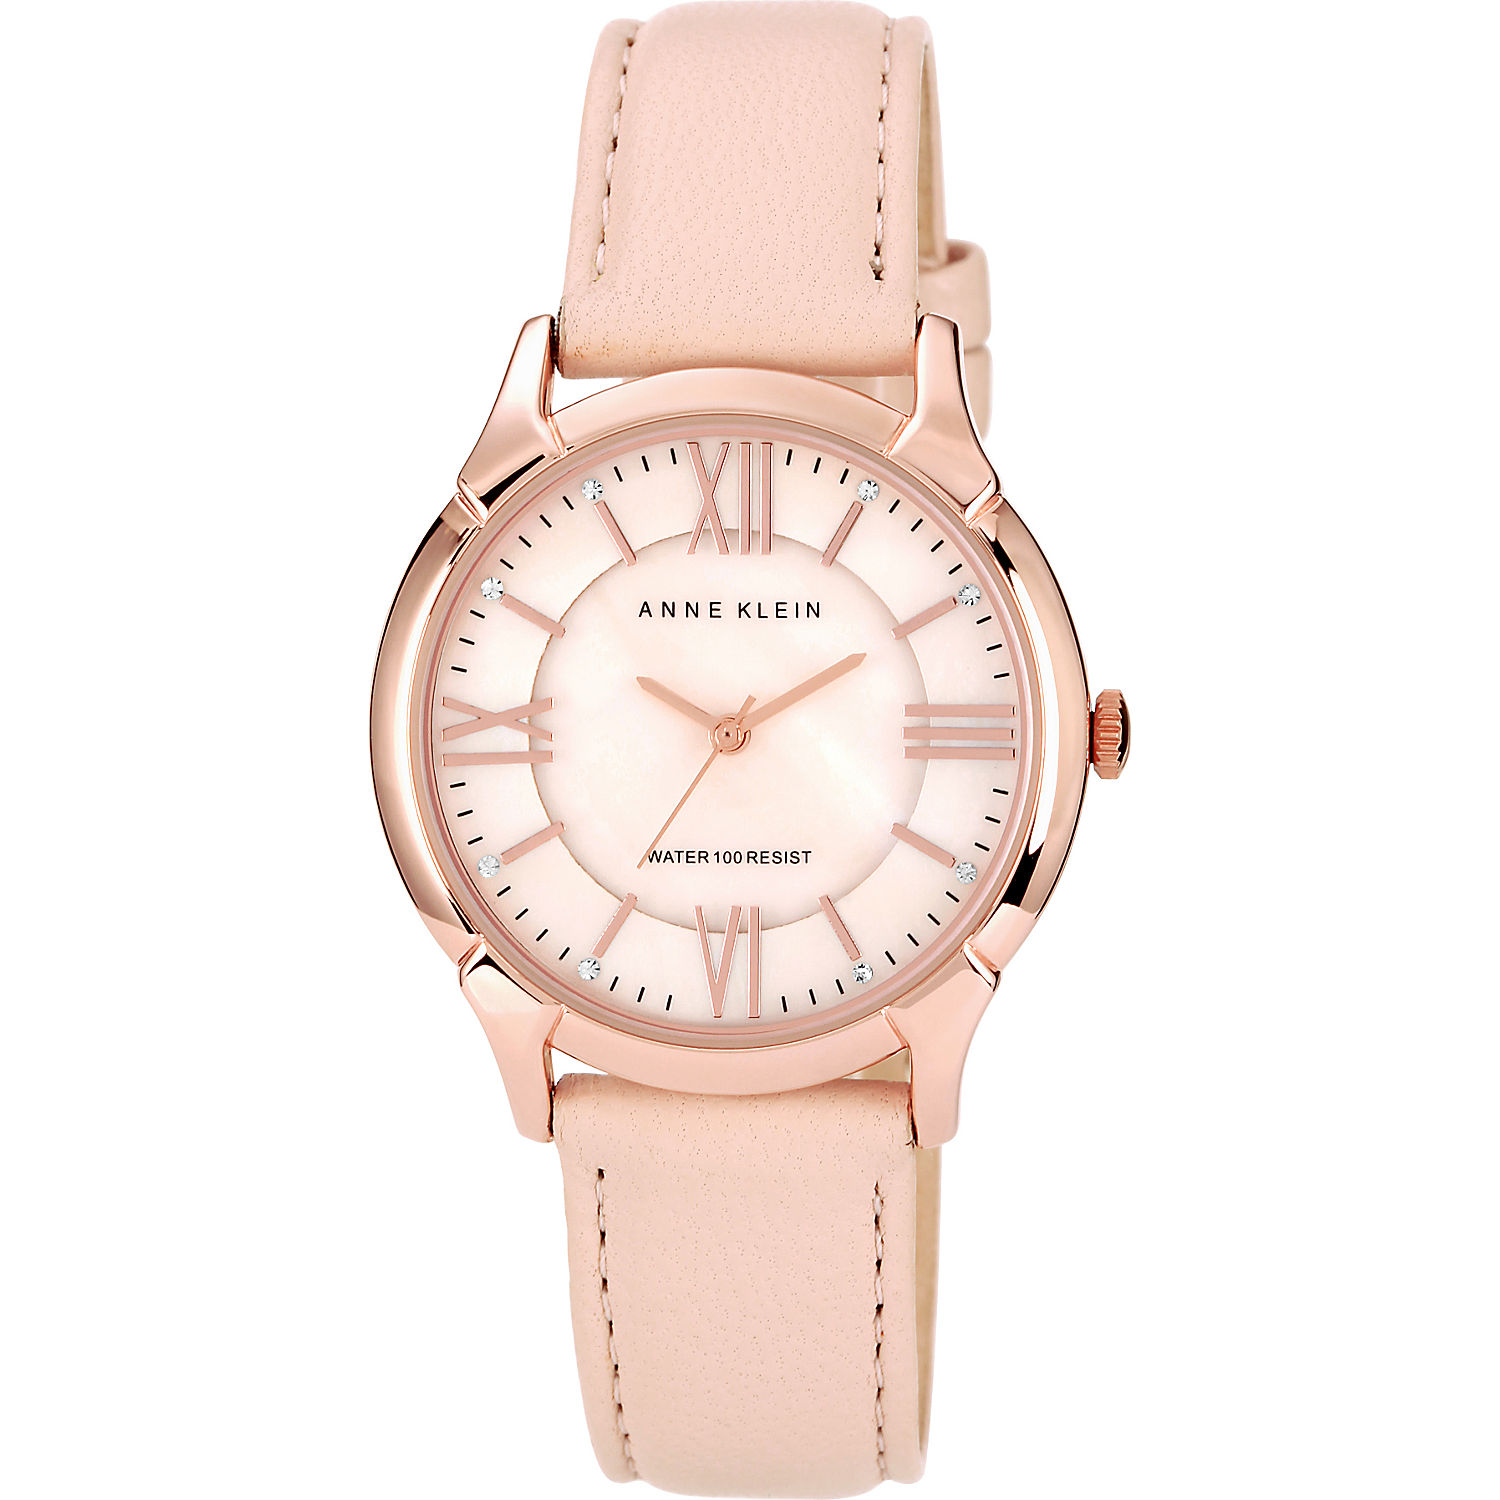 anne klein rose gold tone watch